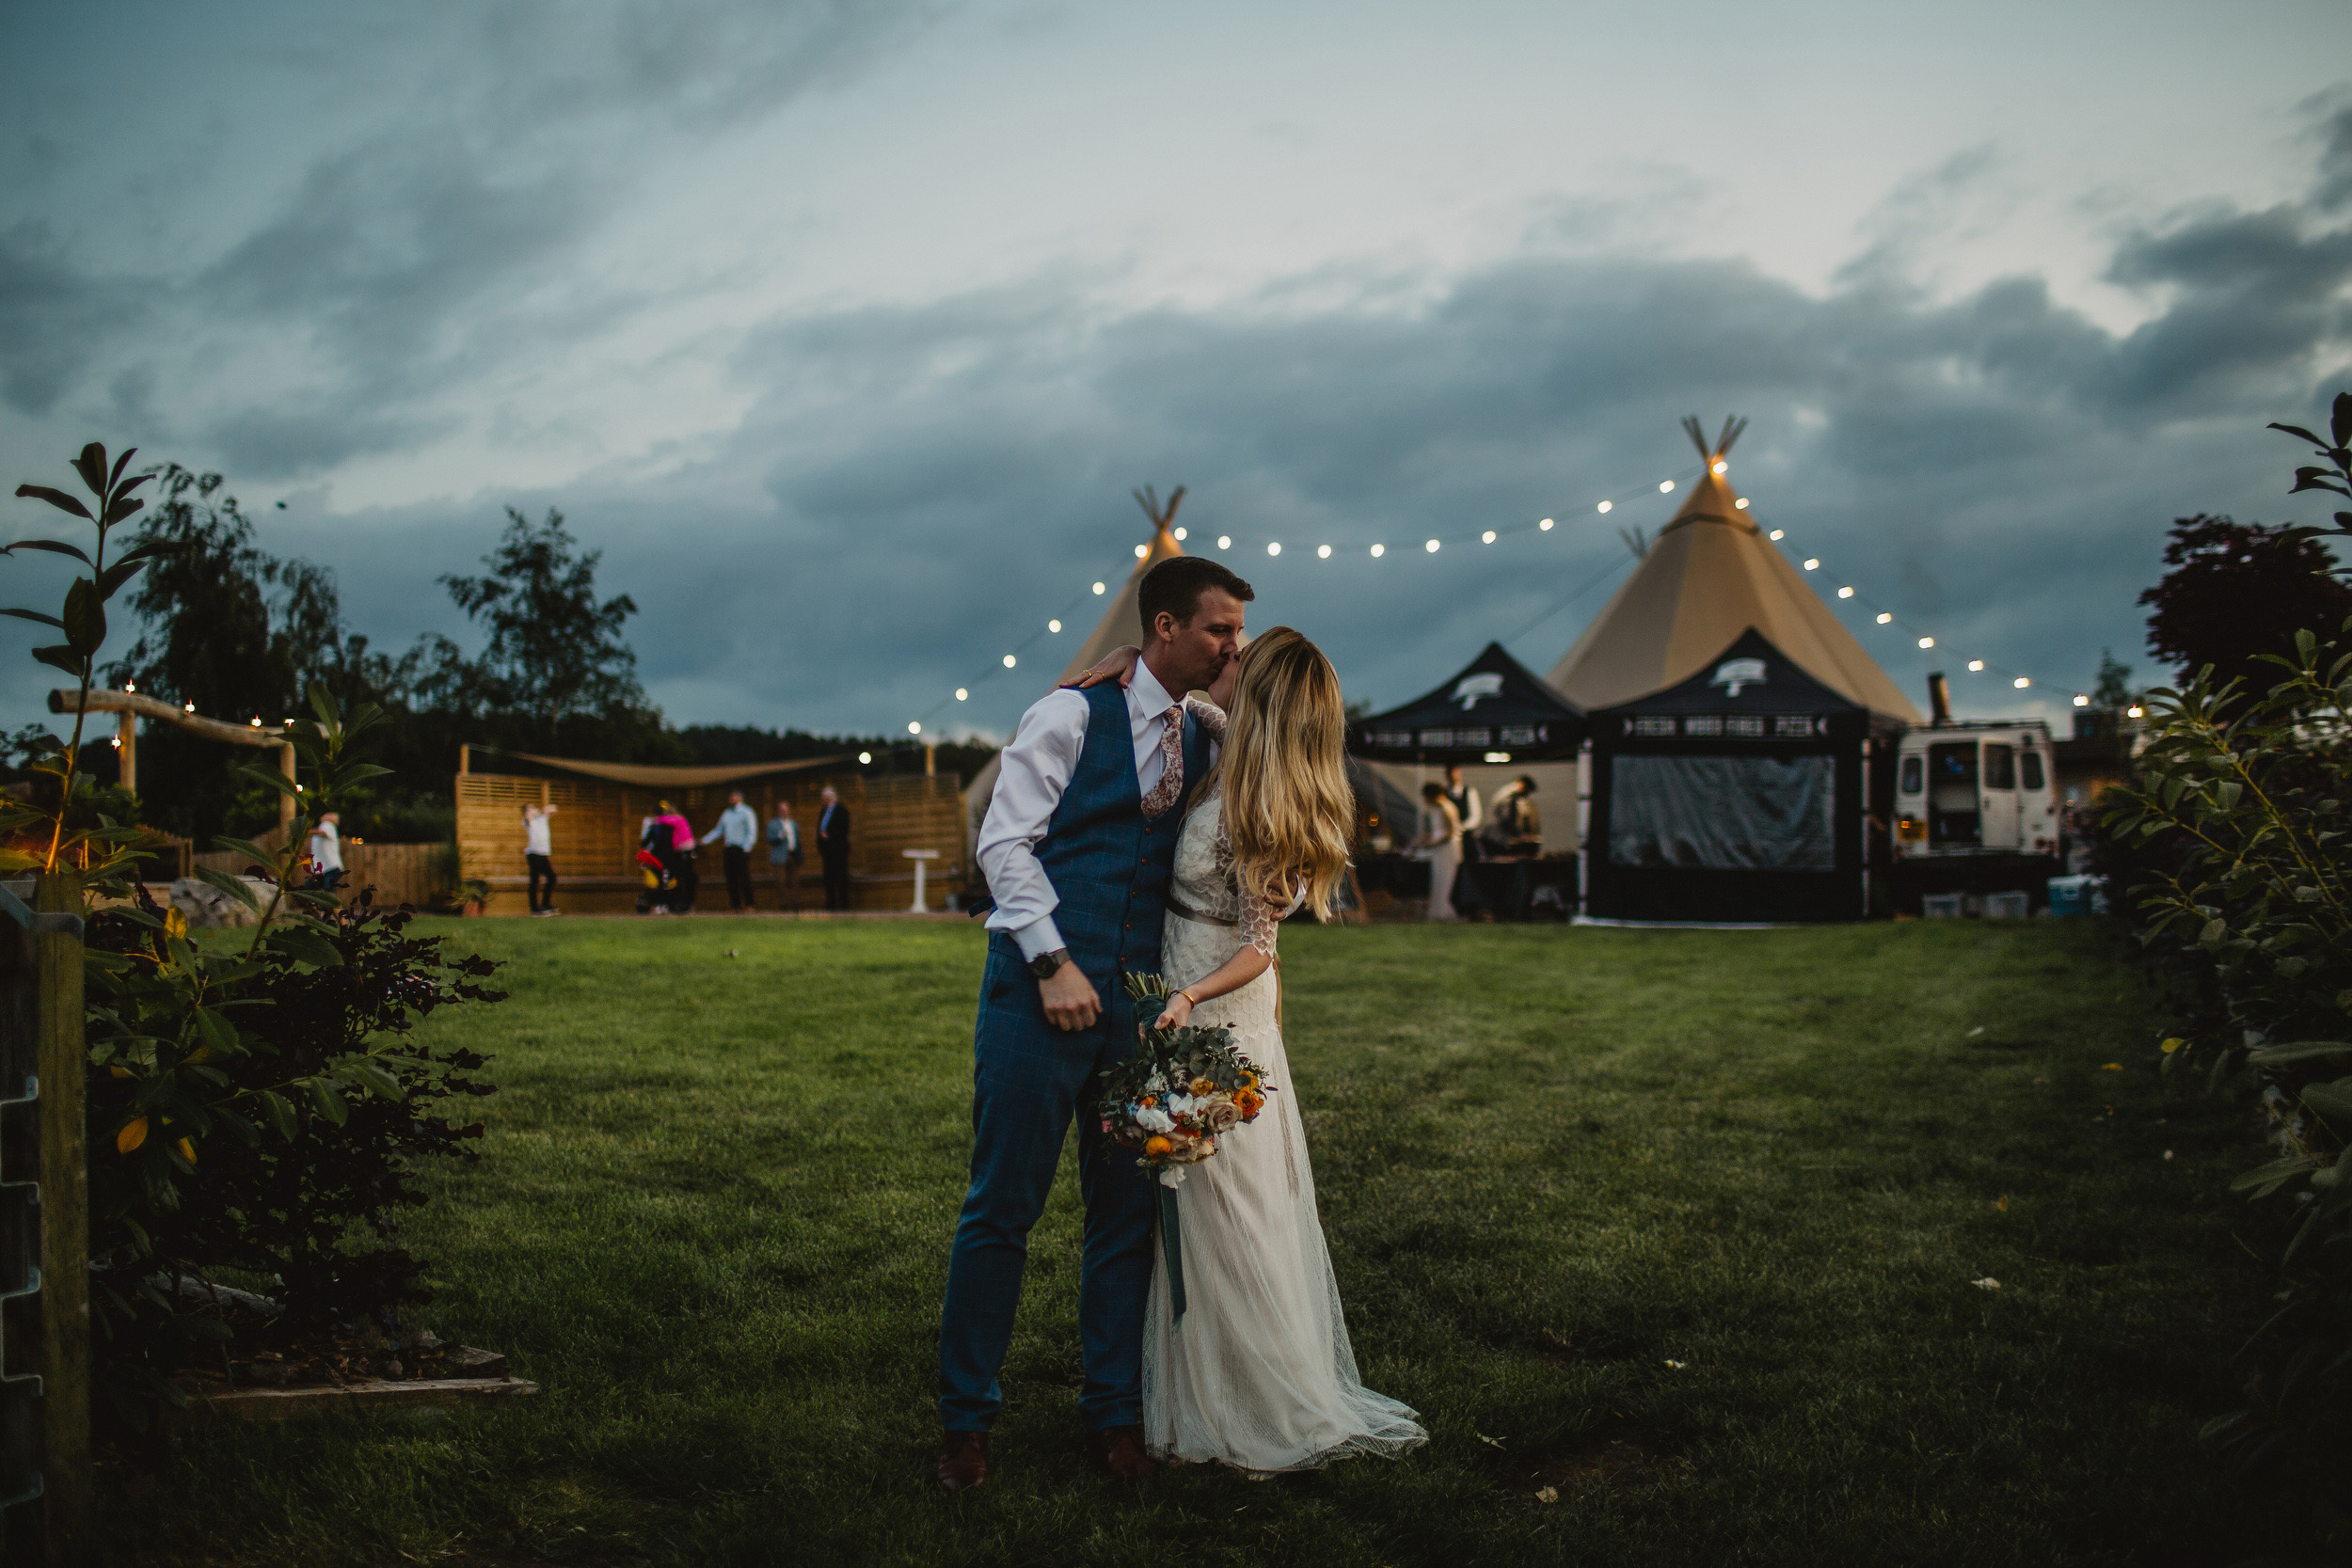 Gemma-Bohemian-Outdoor-Tipi-Wedding-Laid-Back-Relaxed-Family-Wedding-Kate-Beaumont-Astilbe-by-S6-Photography-Sheffield-79.jpg